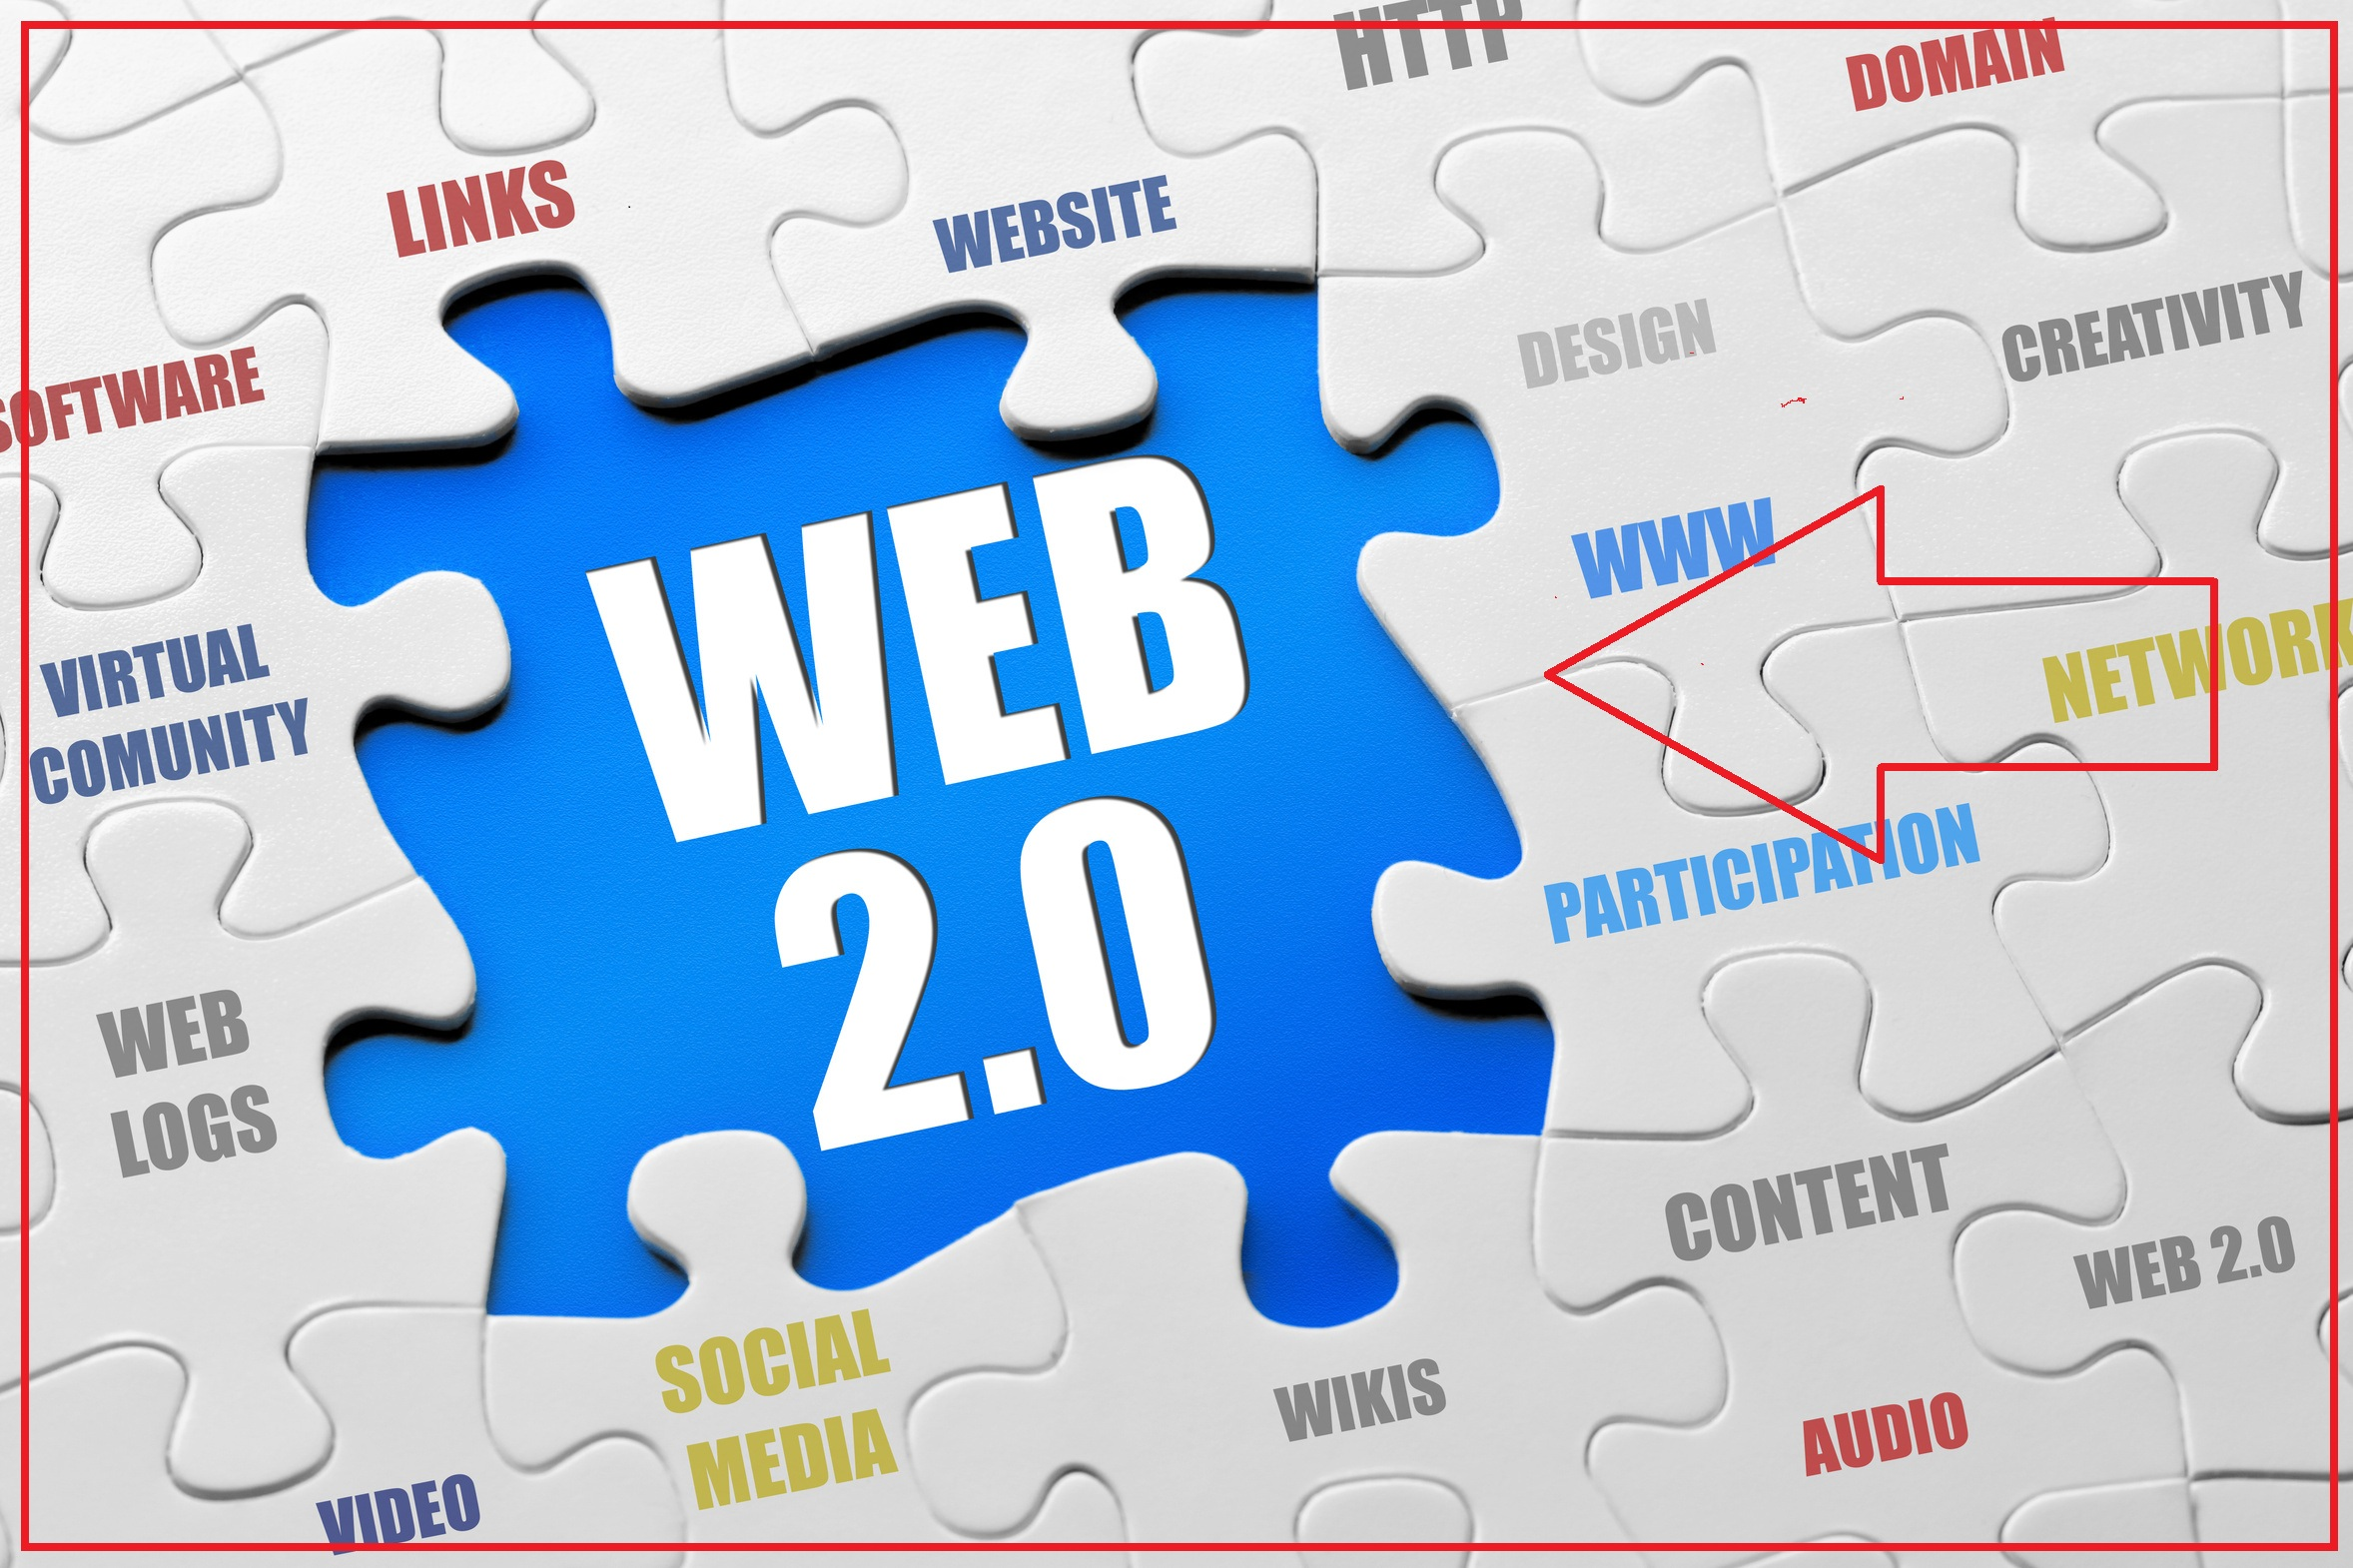 Do 5 Web 2.0 blogs Premium Human-Quality Content